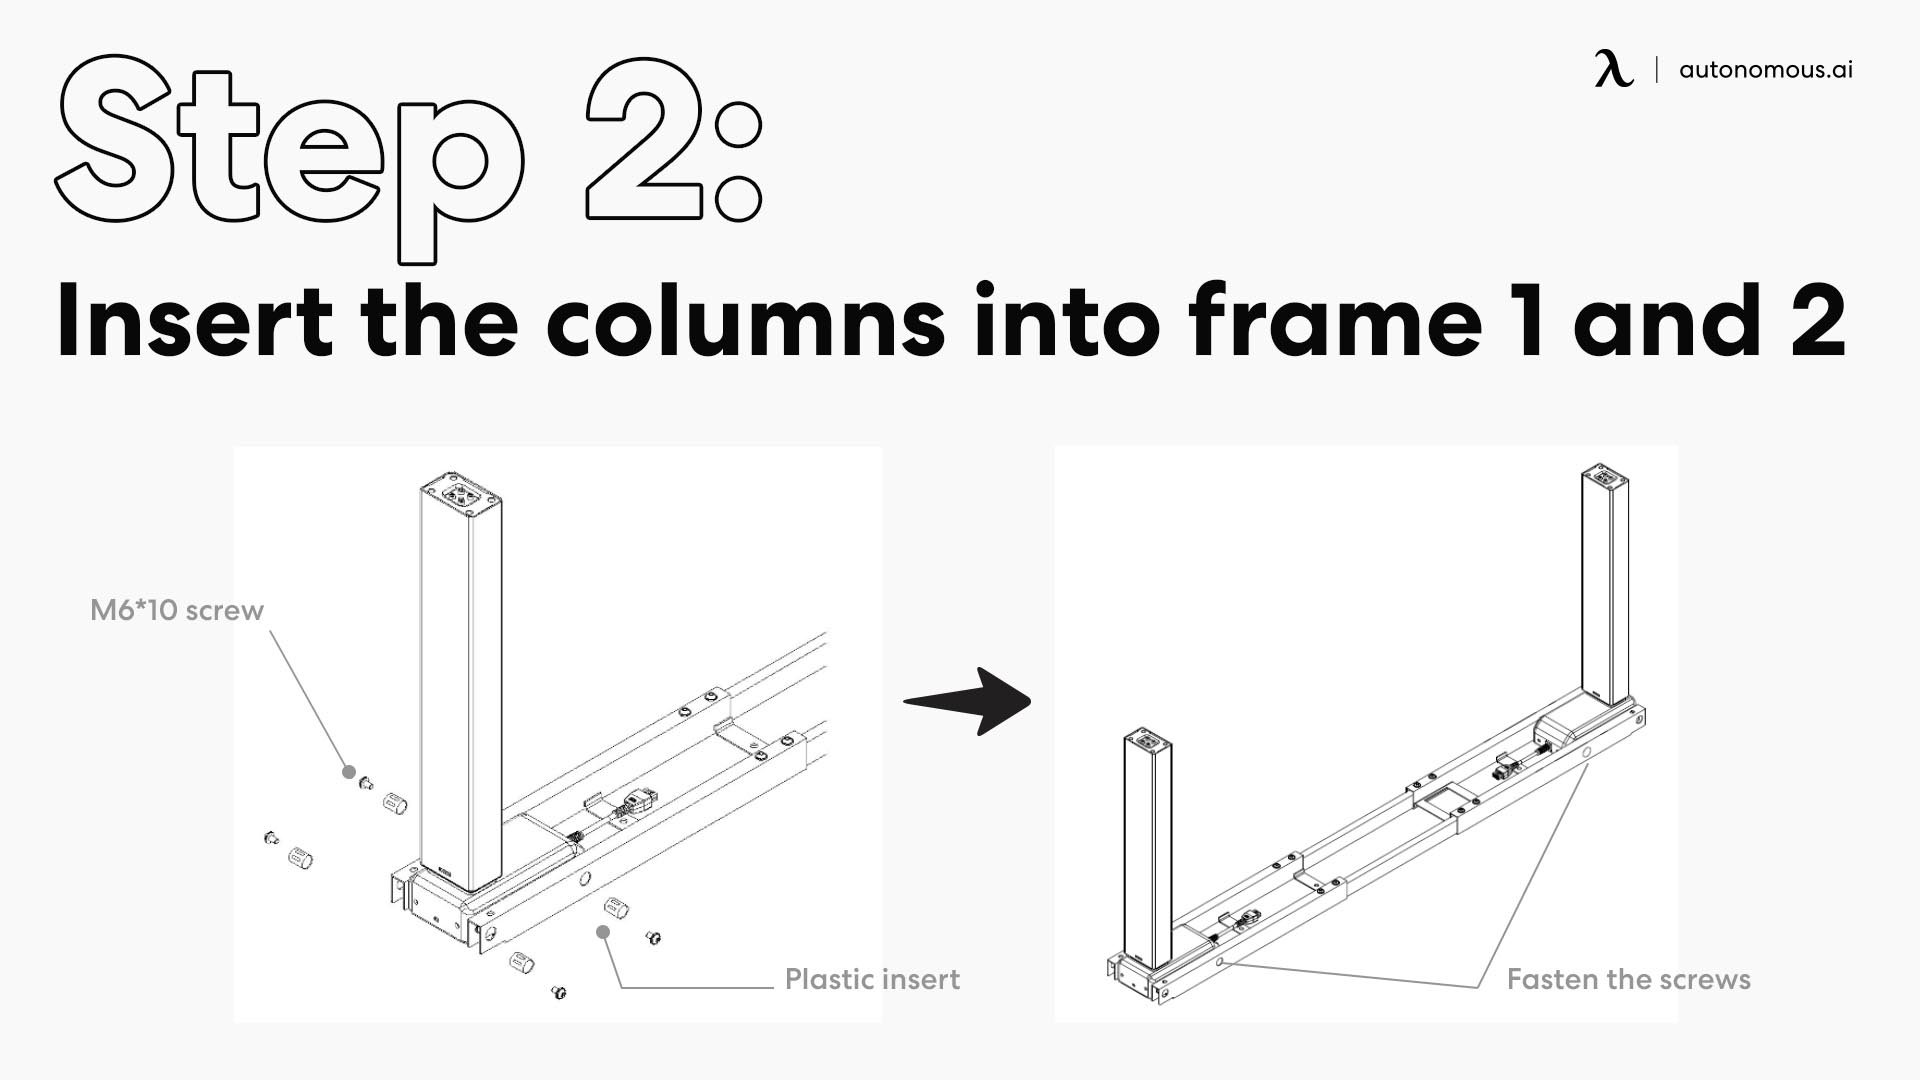 Insert the columns into frame 1 and 2